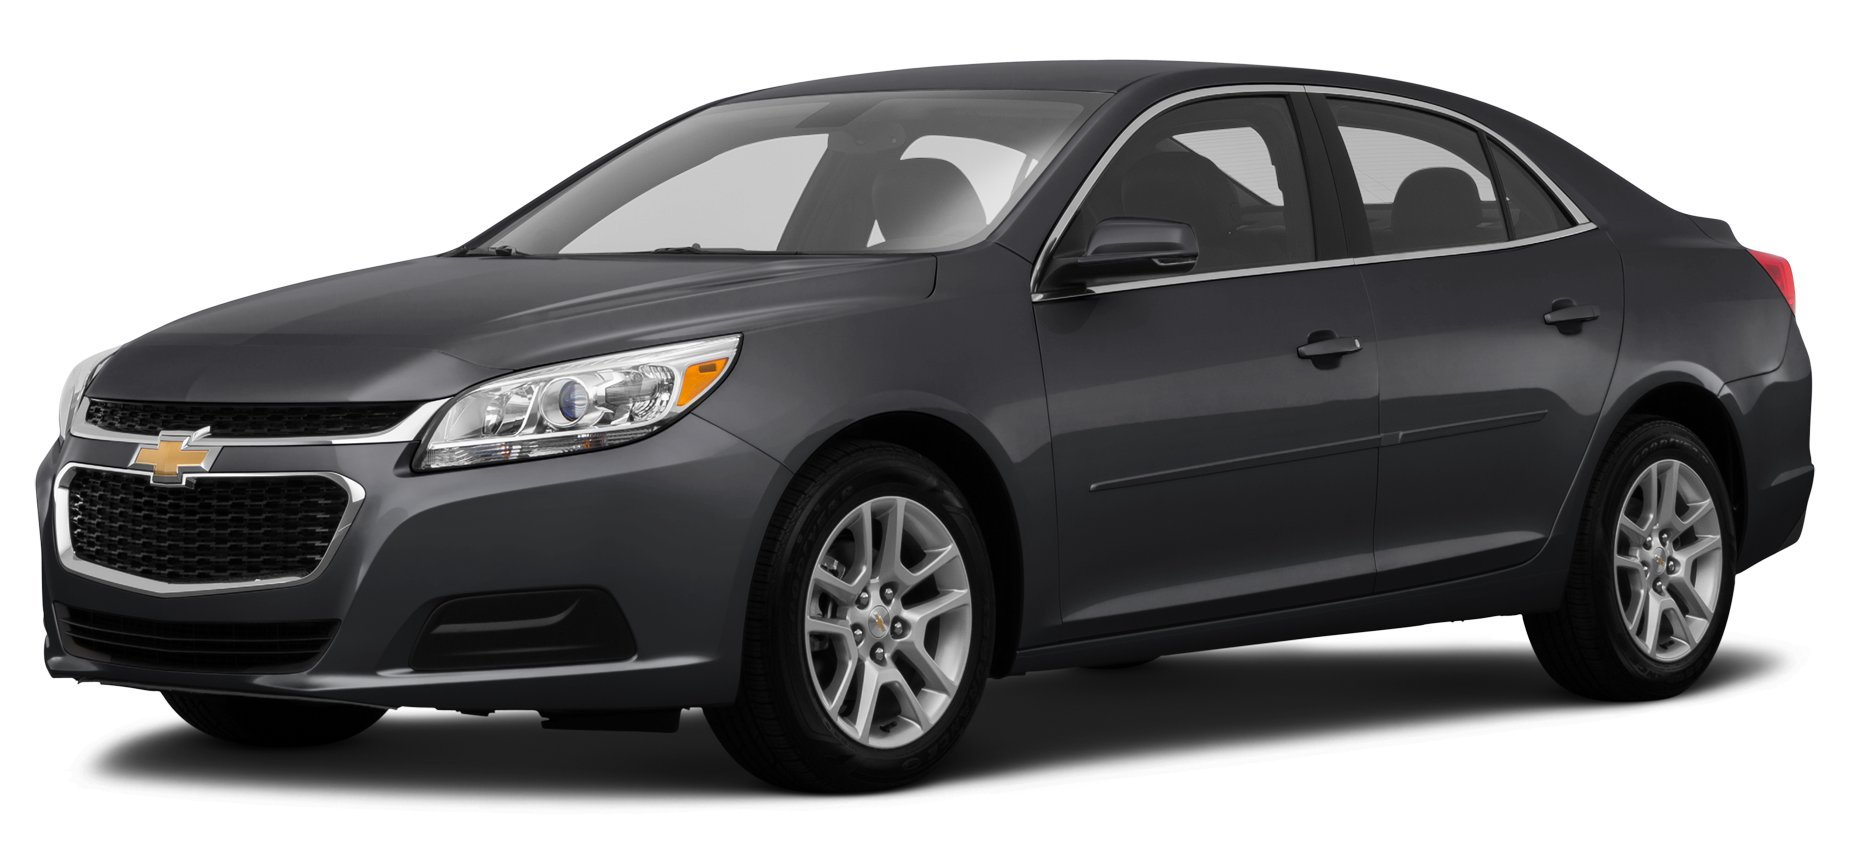 Amazon.com: 2016 Chevrolet Malibu Limited Reviews, Images, and Specs ...